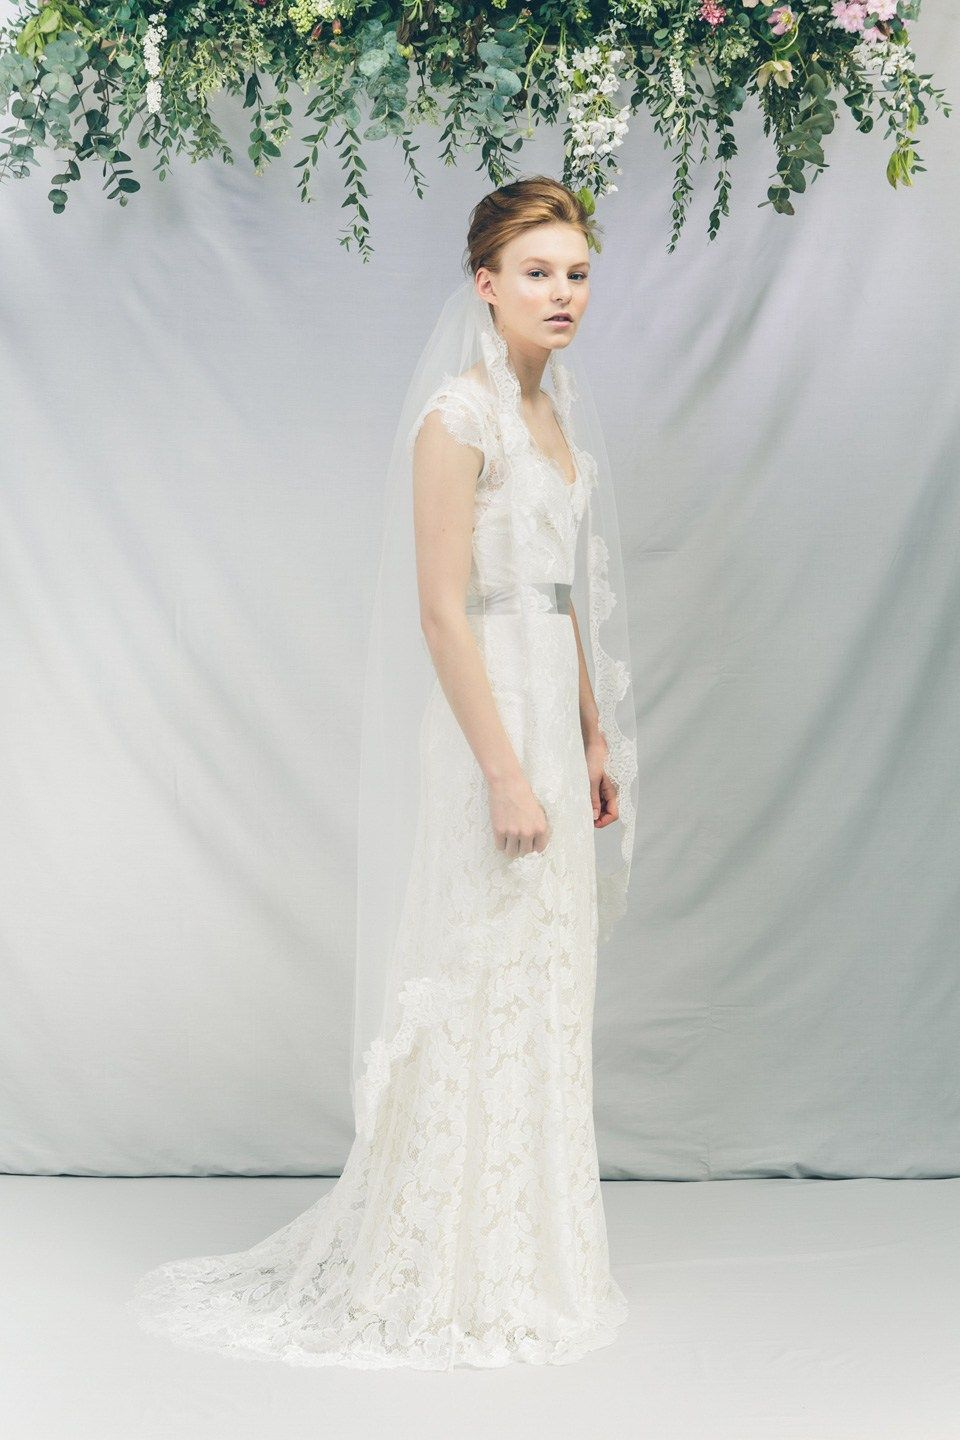 Kate beaumont wedding gowns anemone dress bridal gown a kate beaumont wedding gowns anemone dress ombrellifo Choice Image